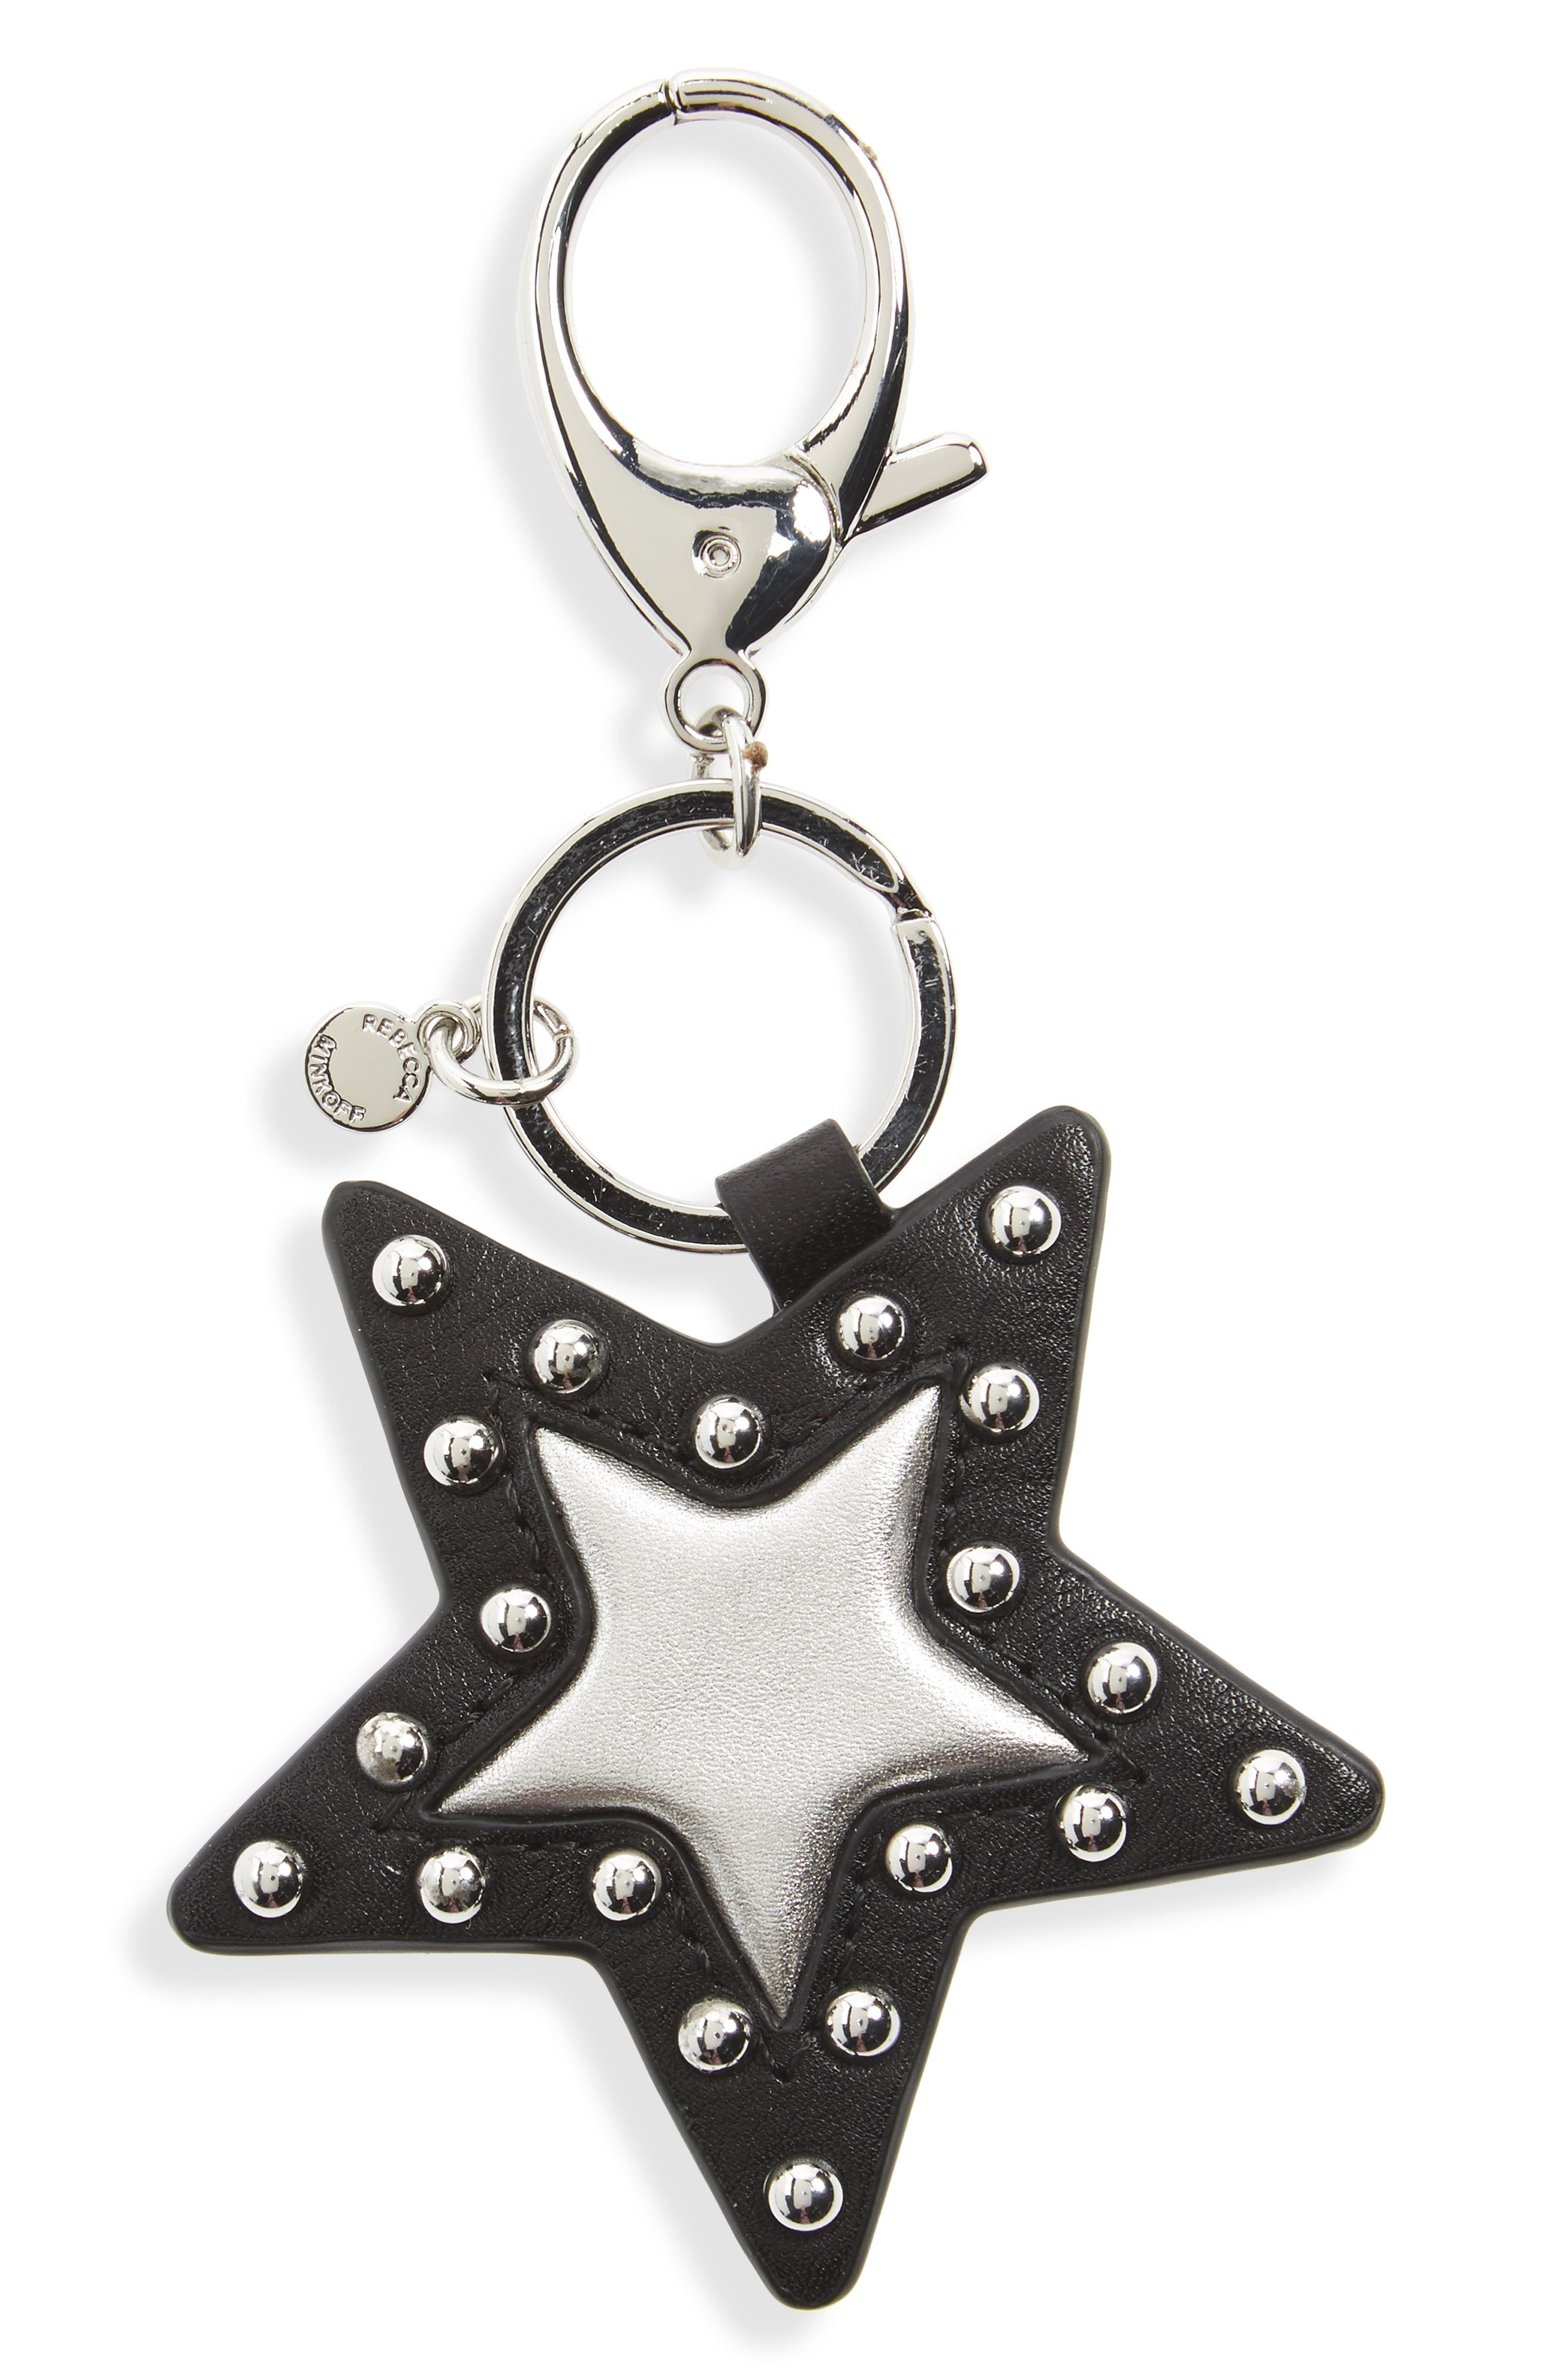 Alternate Image 1 Selected - Rebecca Minkoff Studed Star Leather Bag Charm